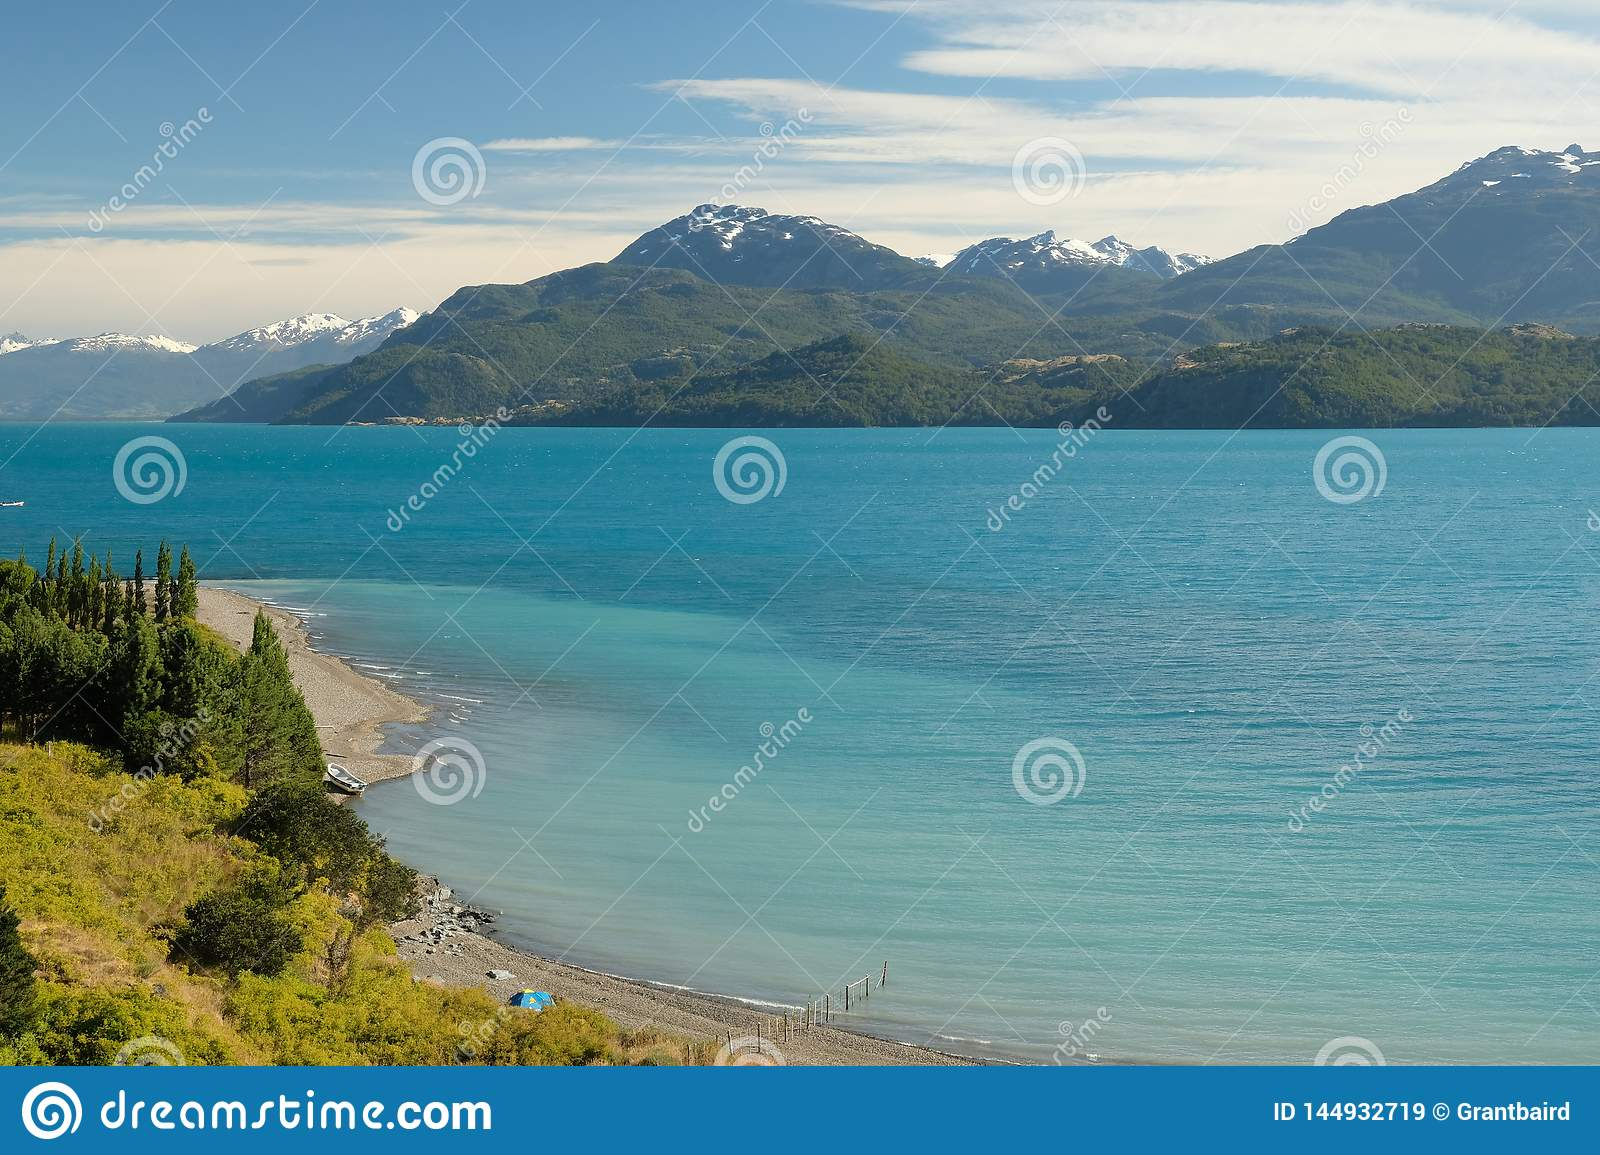 Tropical blue lake General Carrera, Chile with landscape mountains and tent